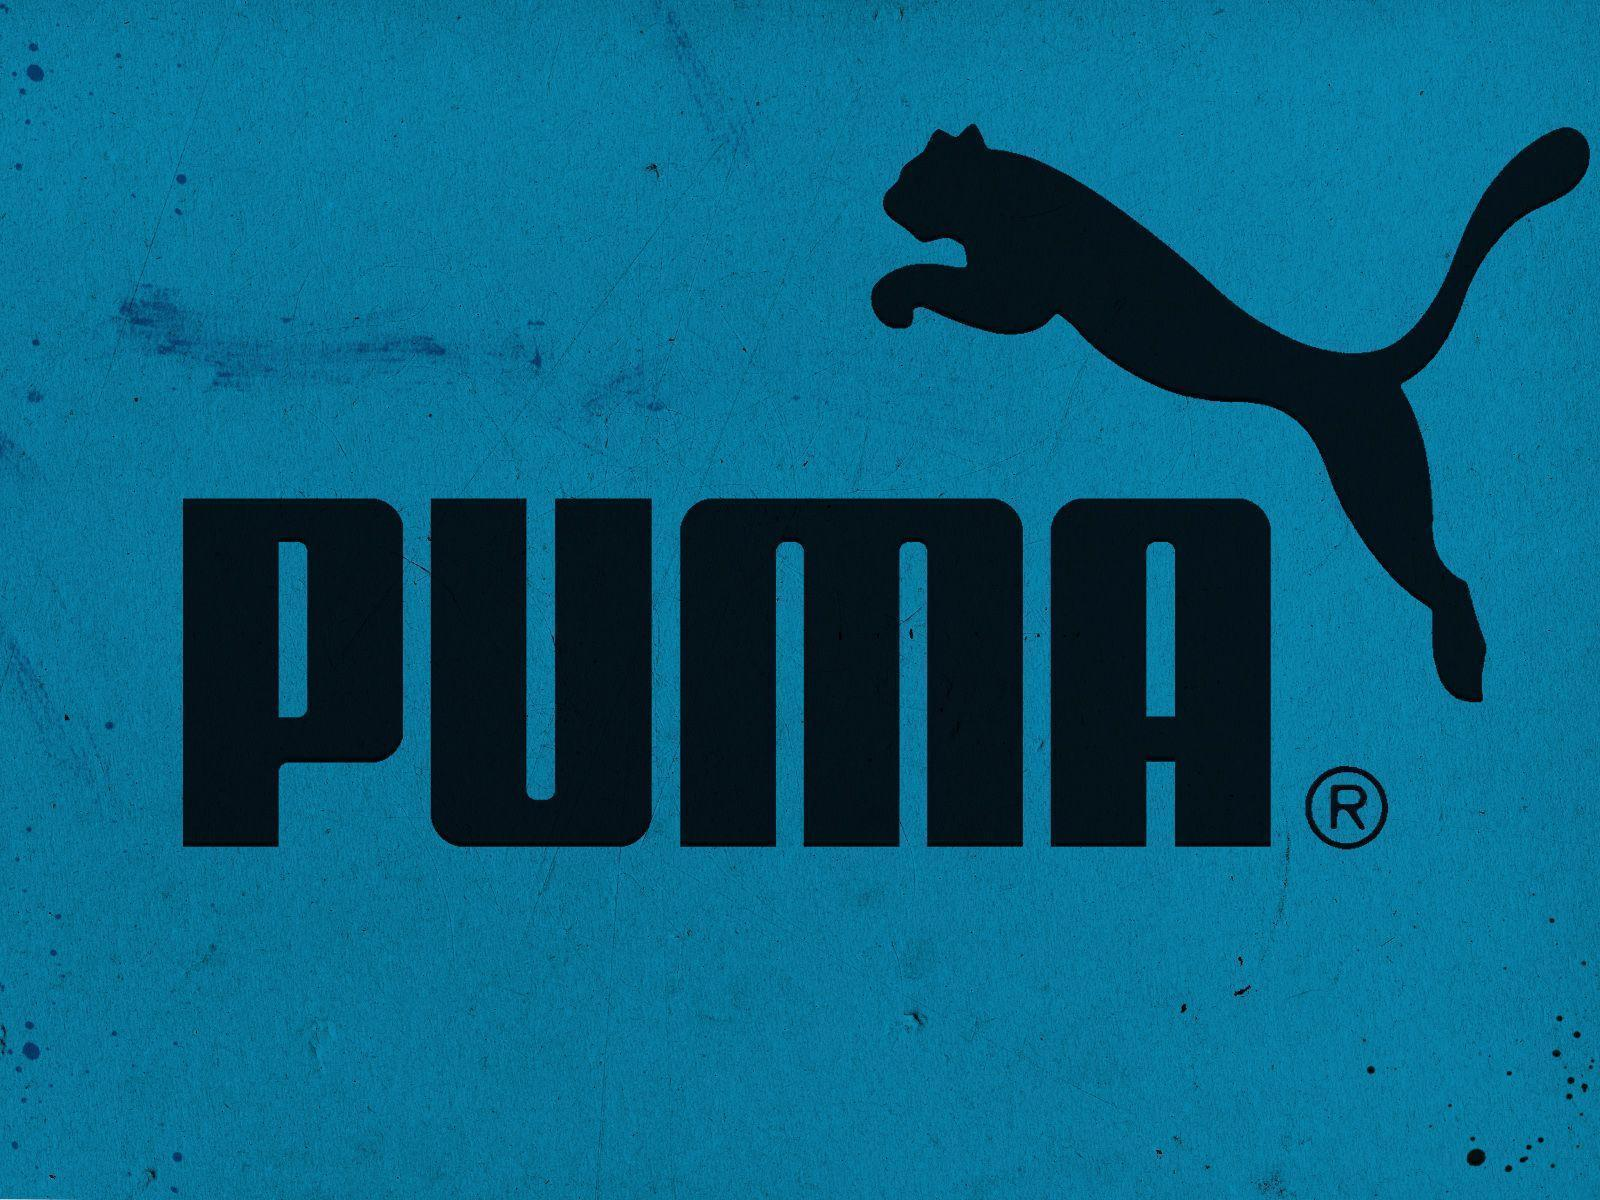 puma soccer wallpapers images - photo #5